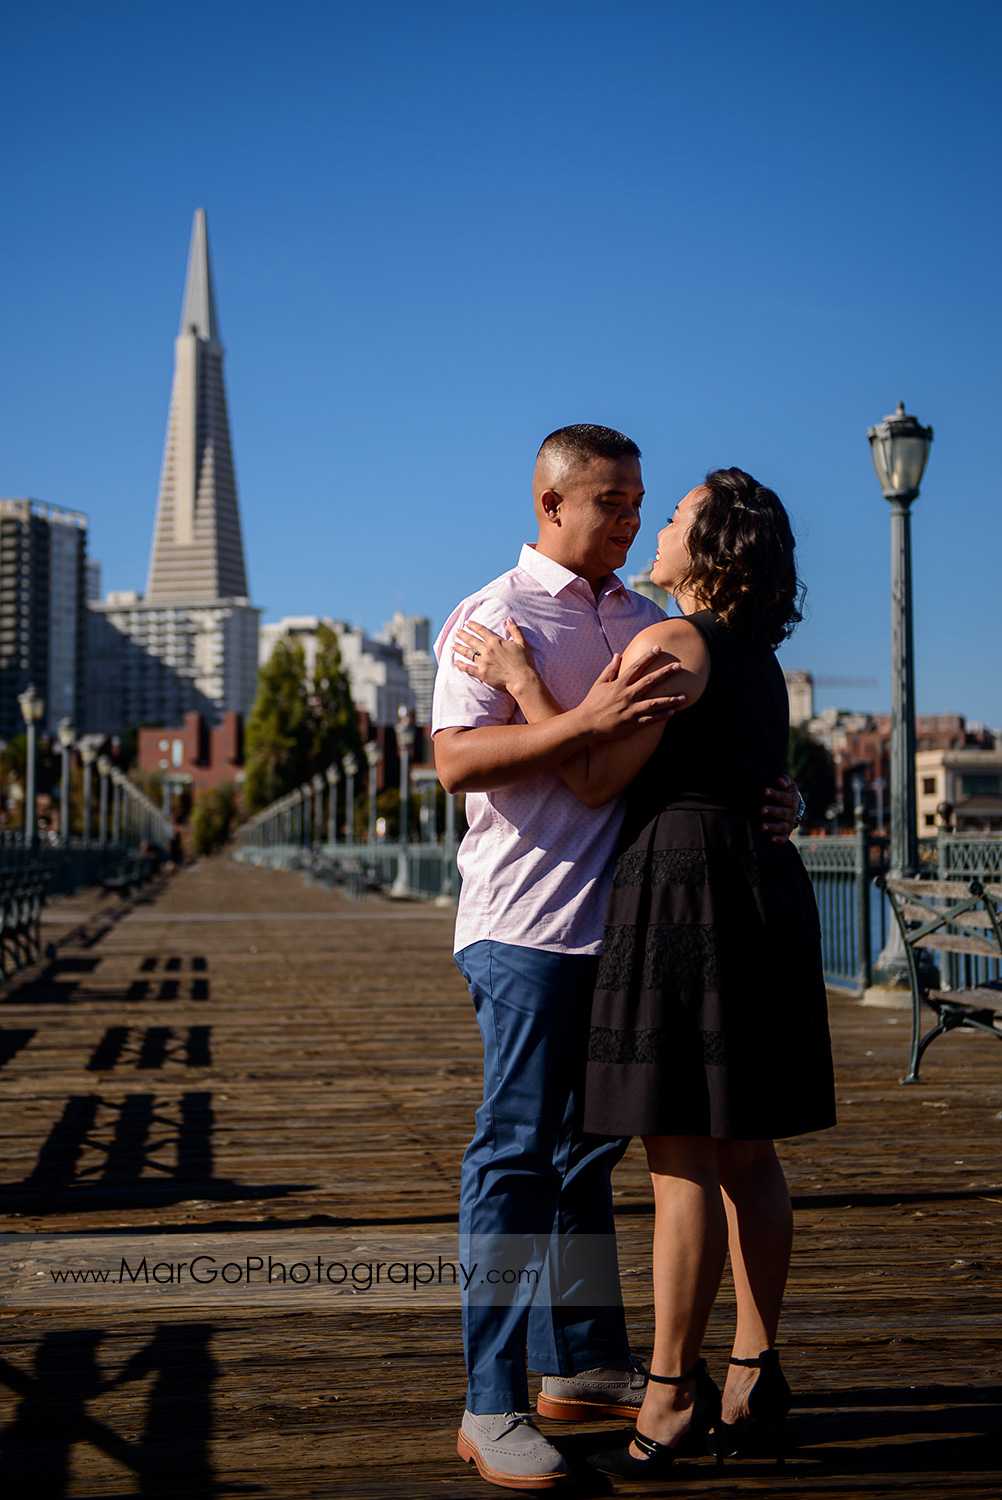 engagement session at Pier 7 in San Francisco - couple hugging with the Transamerica Pyramid in the background